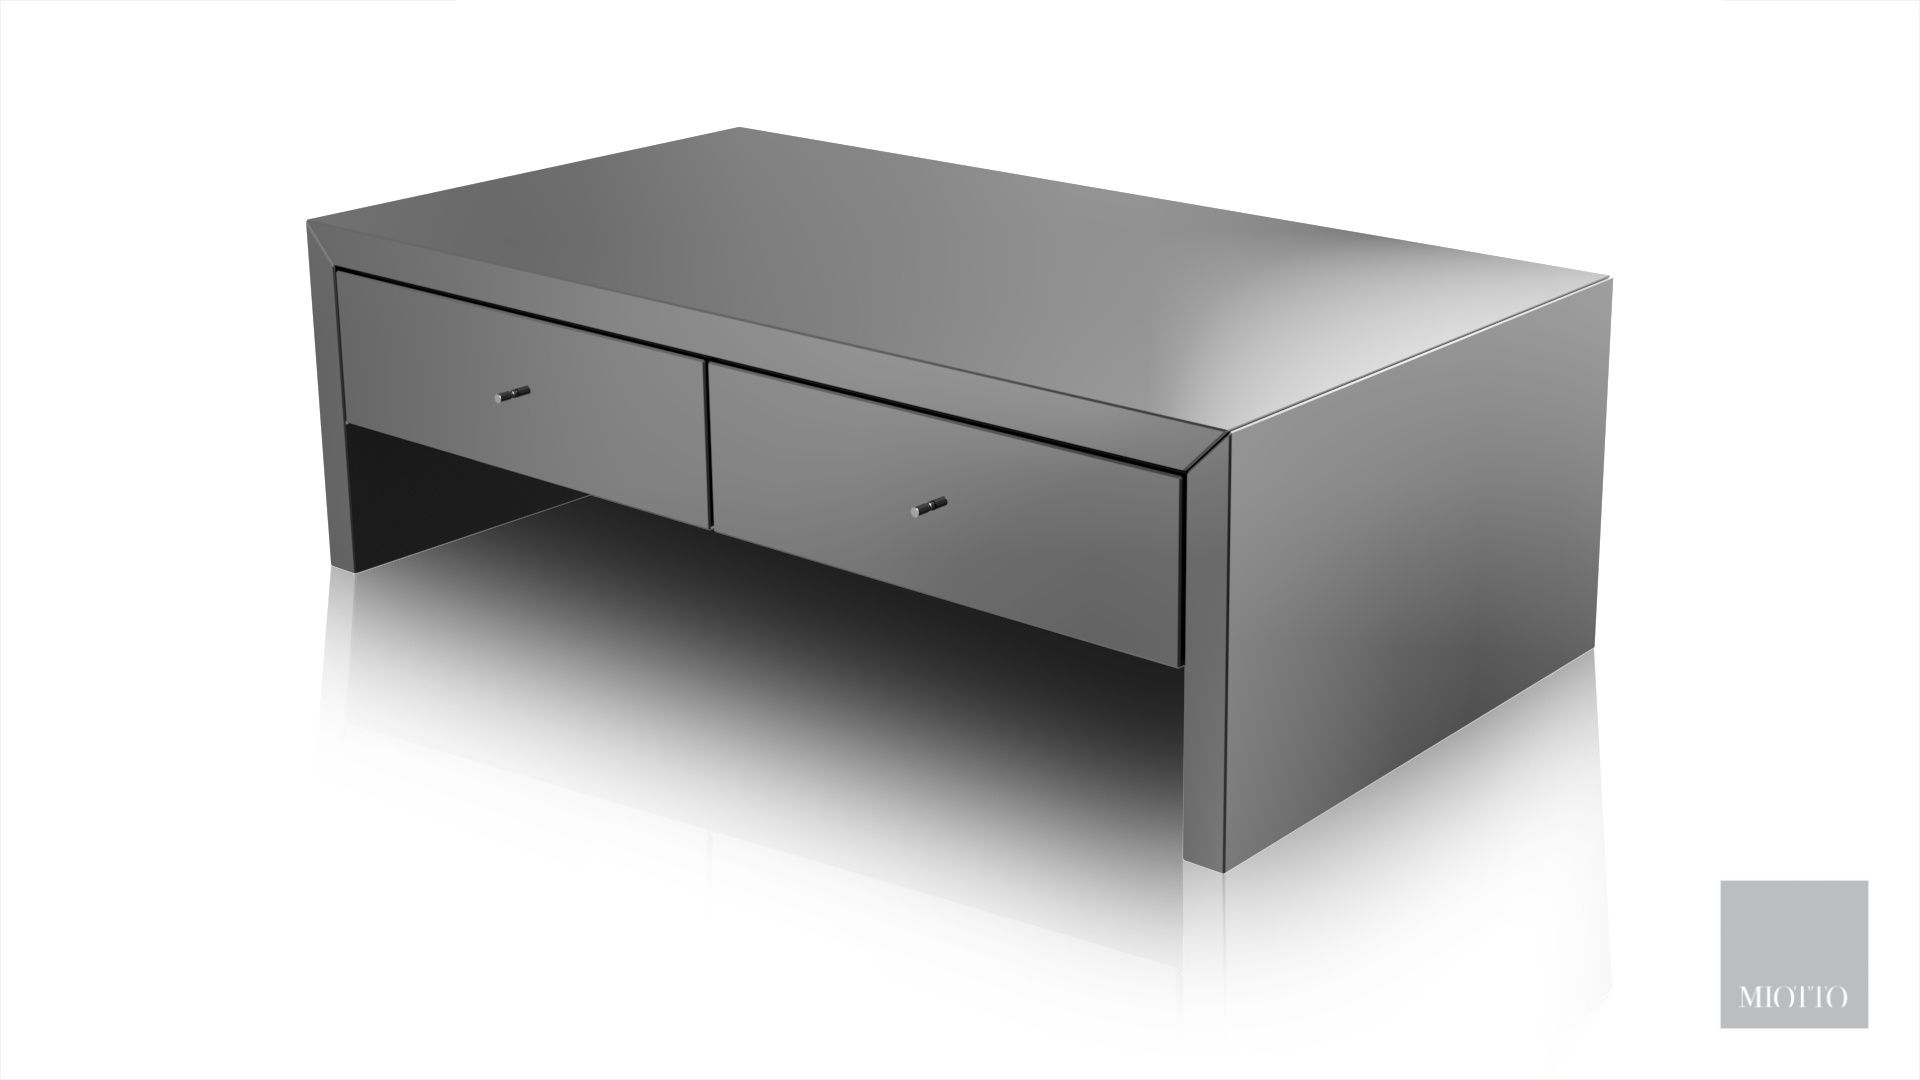 miotto_losa coffee table_web